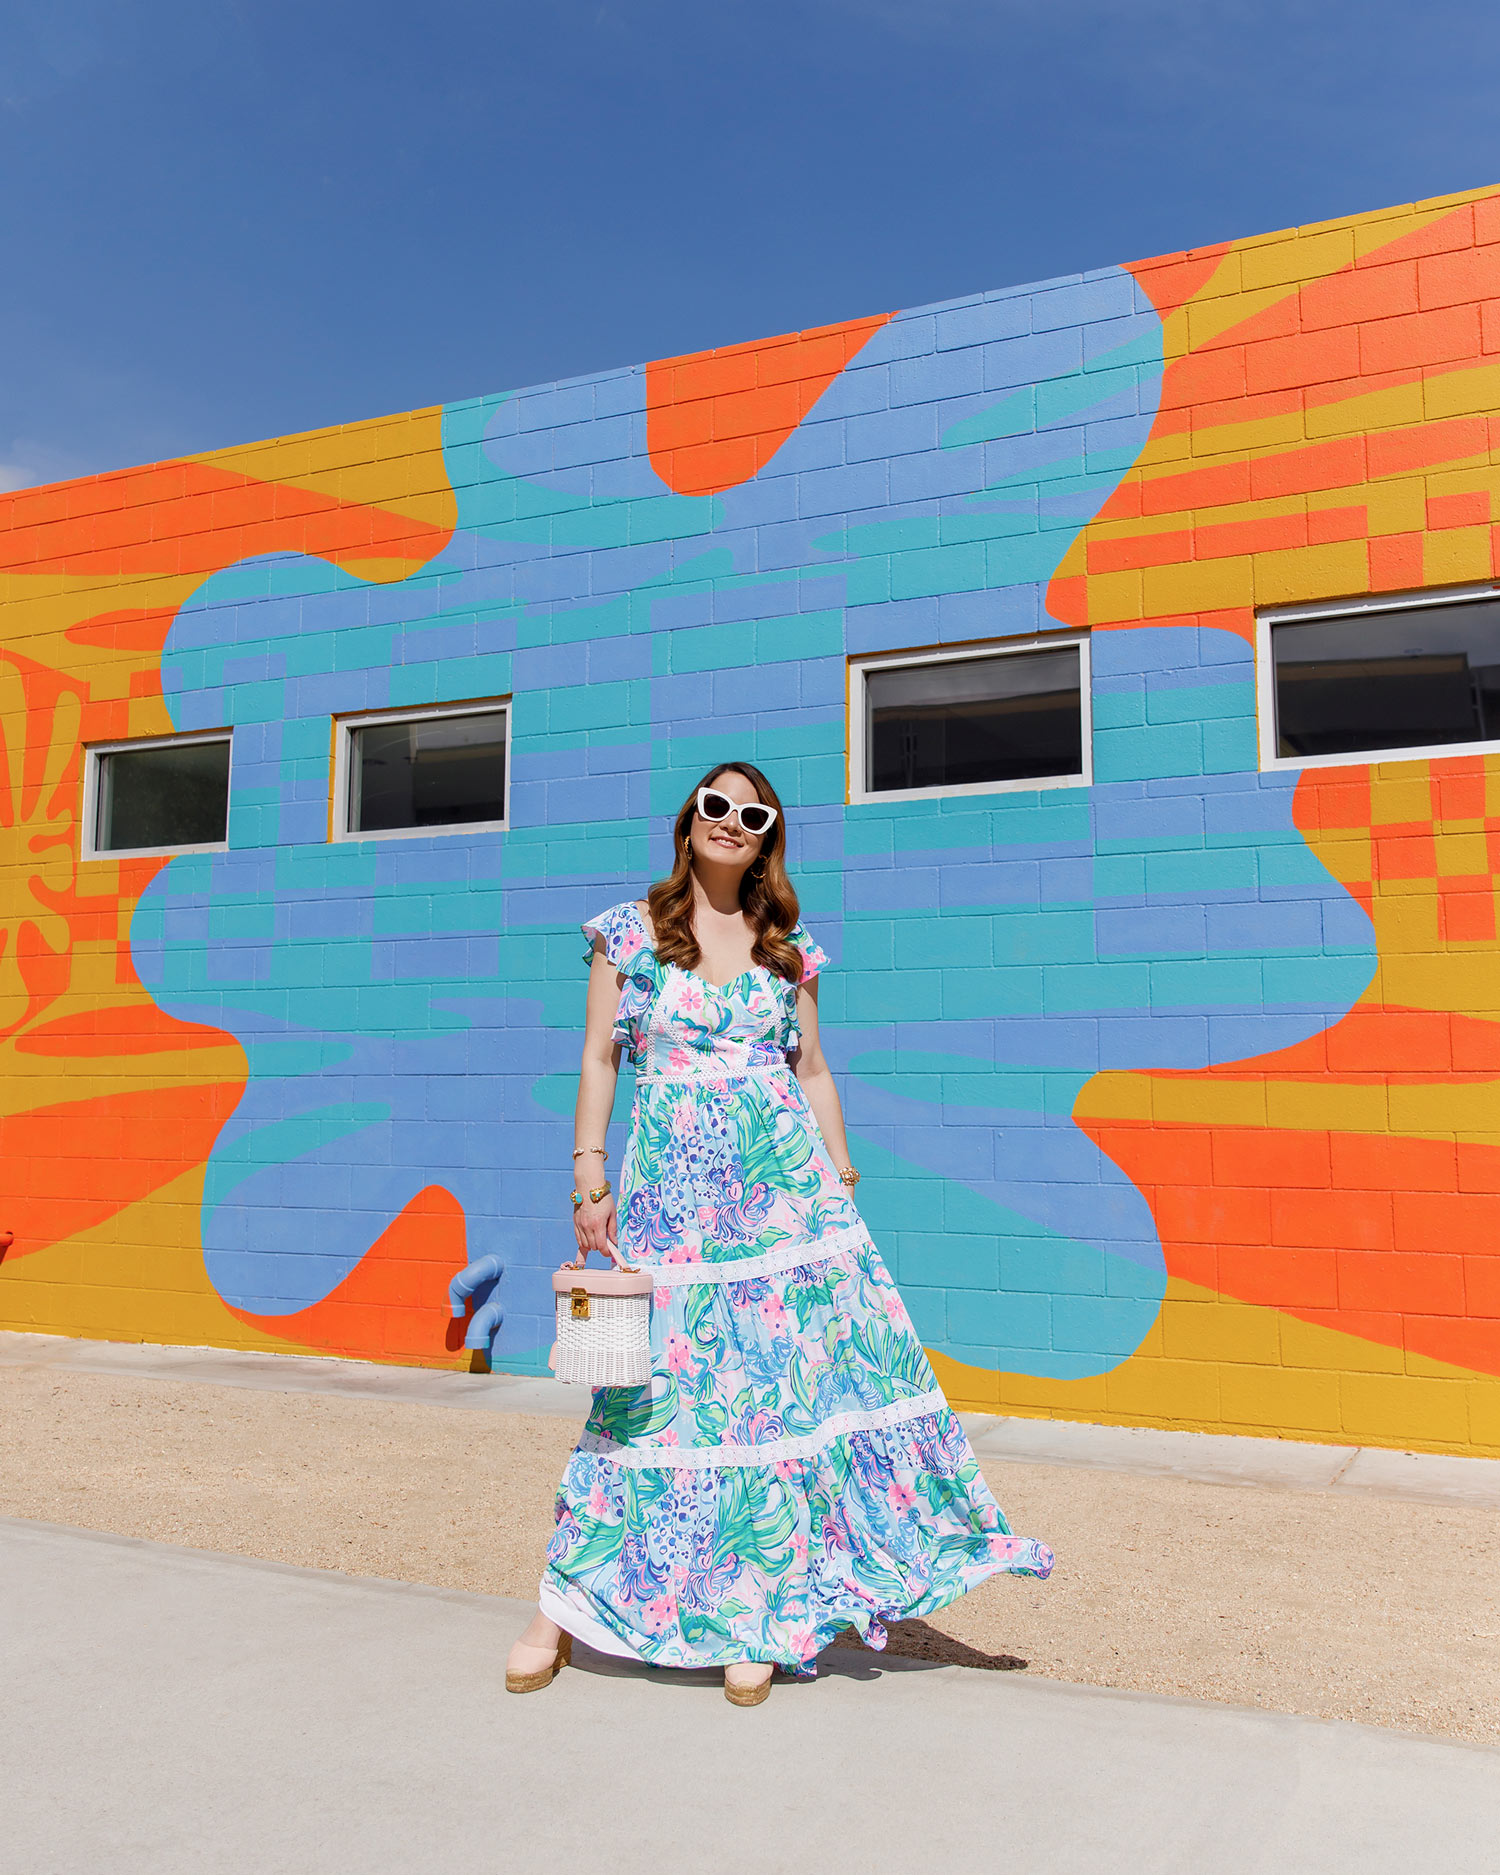 Lilly Pulitzer ACE Hotel